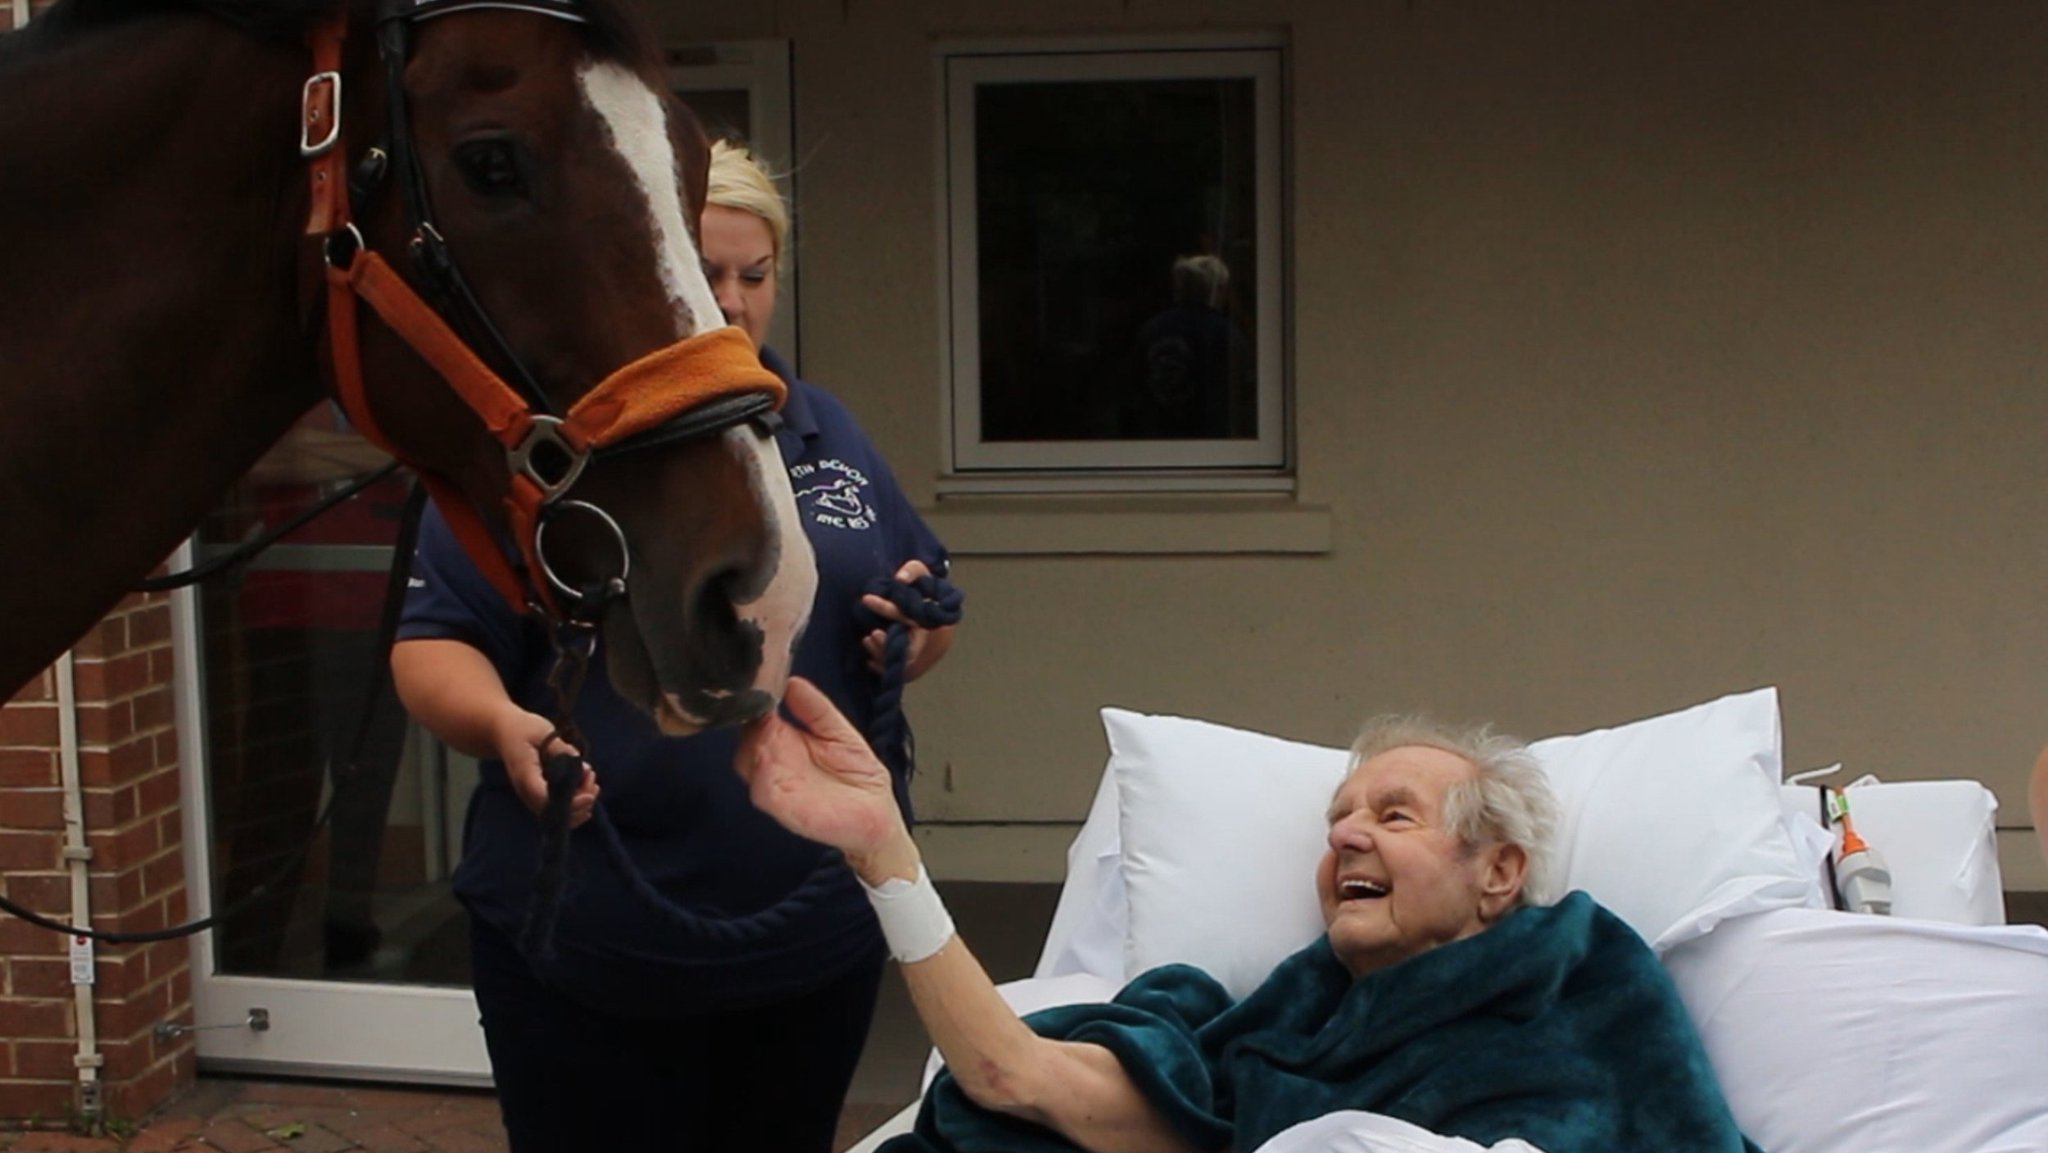 Family brings horse to dying man's bedside in the sweetest surprise https://t.co/PfrFwaRyXF https://t.co/1HPpYF8cuO